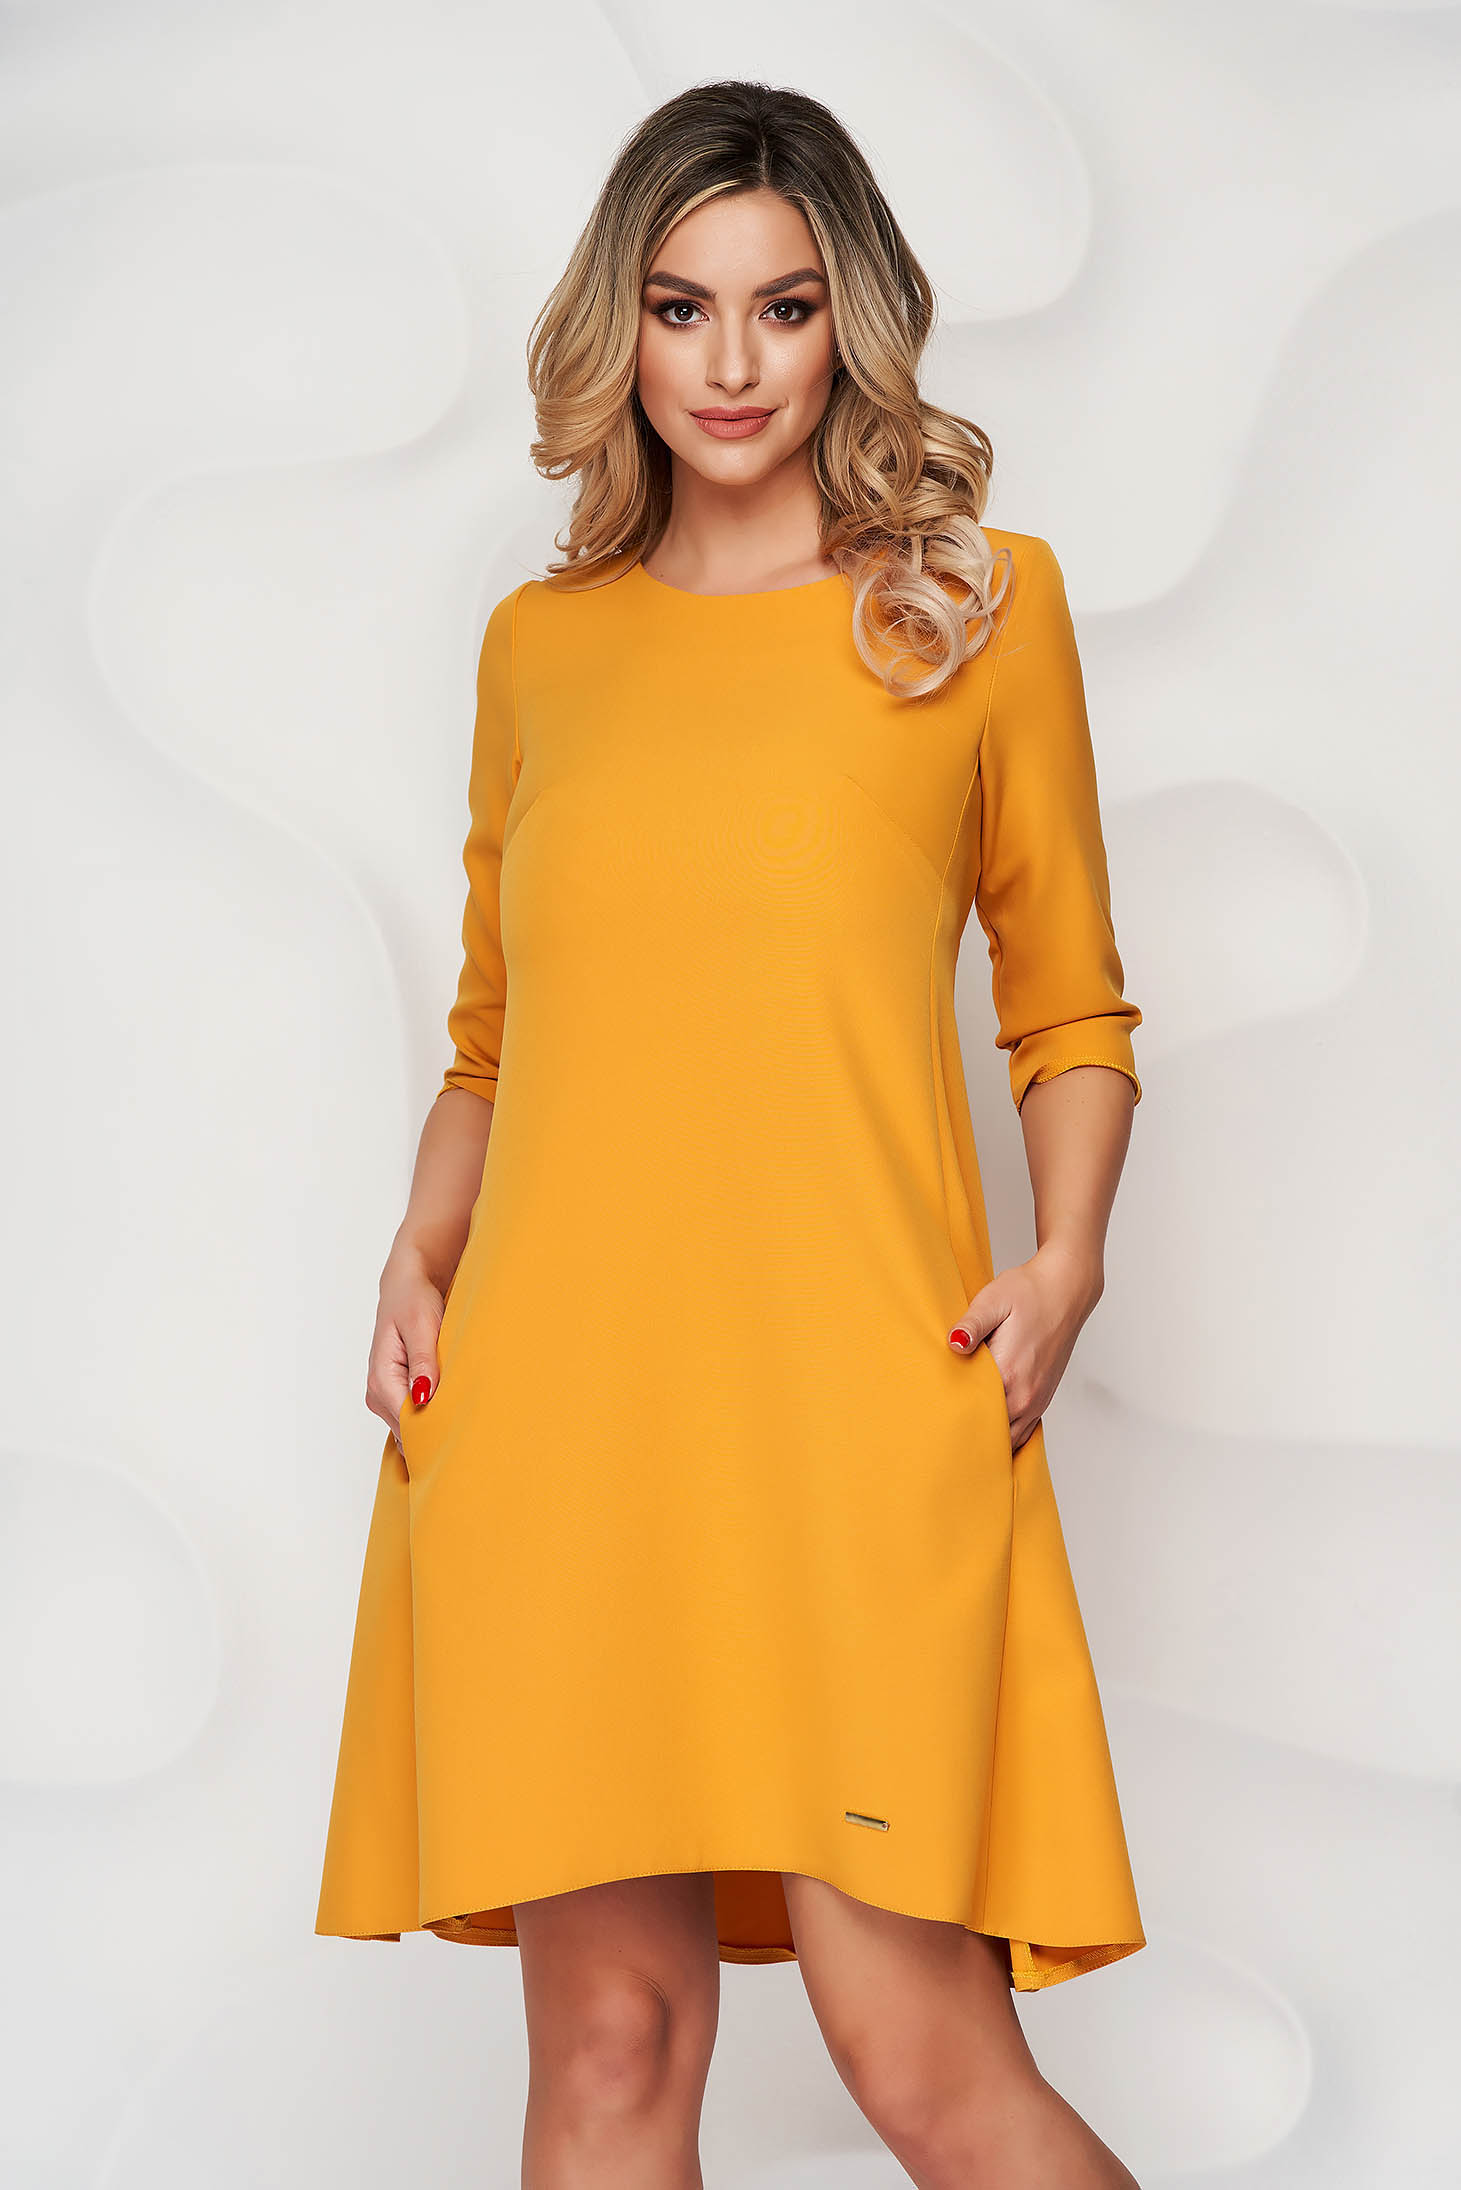 Dress mustard office a-line cloth slightly elastic fabric with rounded cleavage